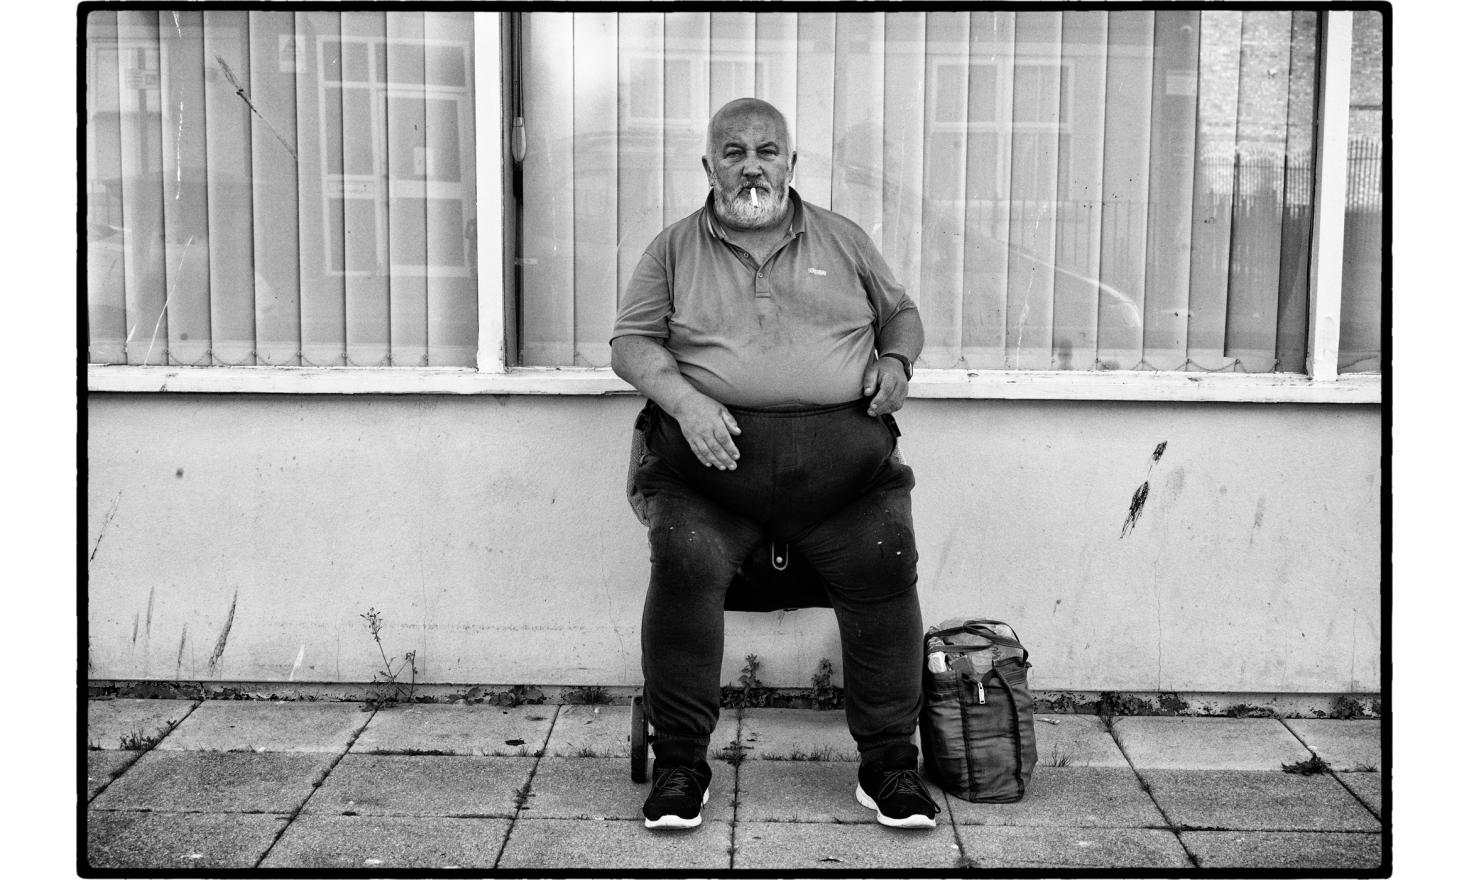 "As I was going to the railway station, very early morning, the man  greeted me with a"" hello, how are you"". I realized after that I saw him the night before at the same place. Clacton on sea, England. July 2016."